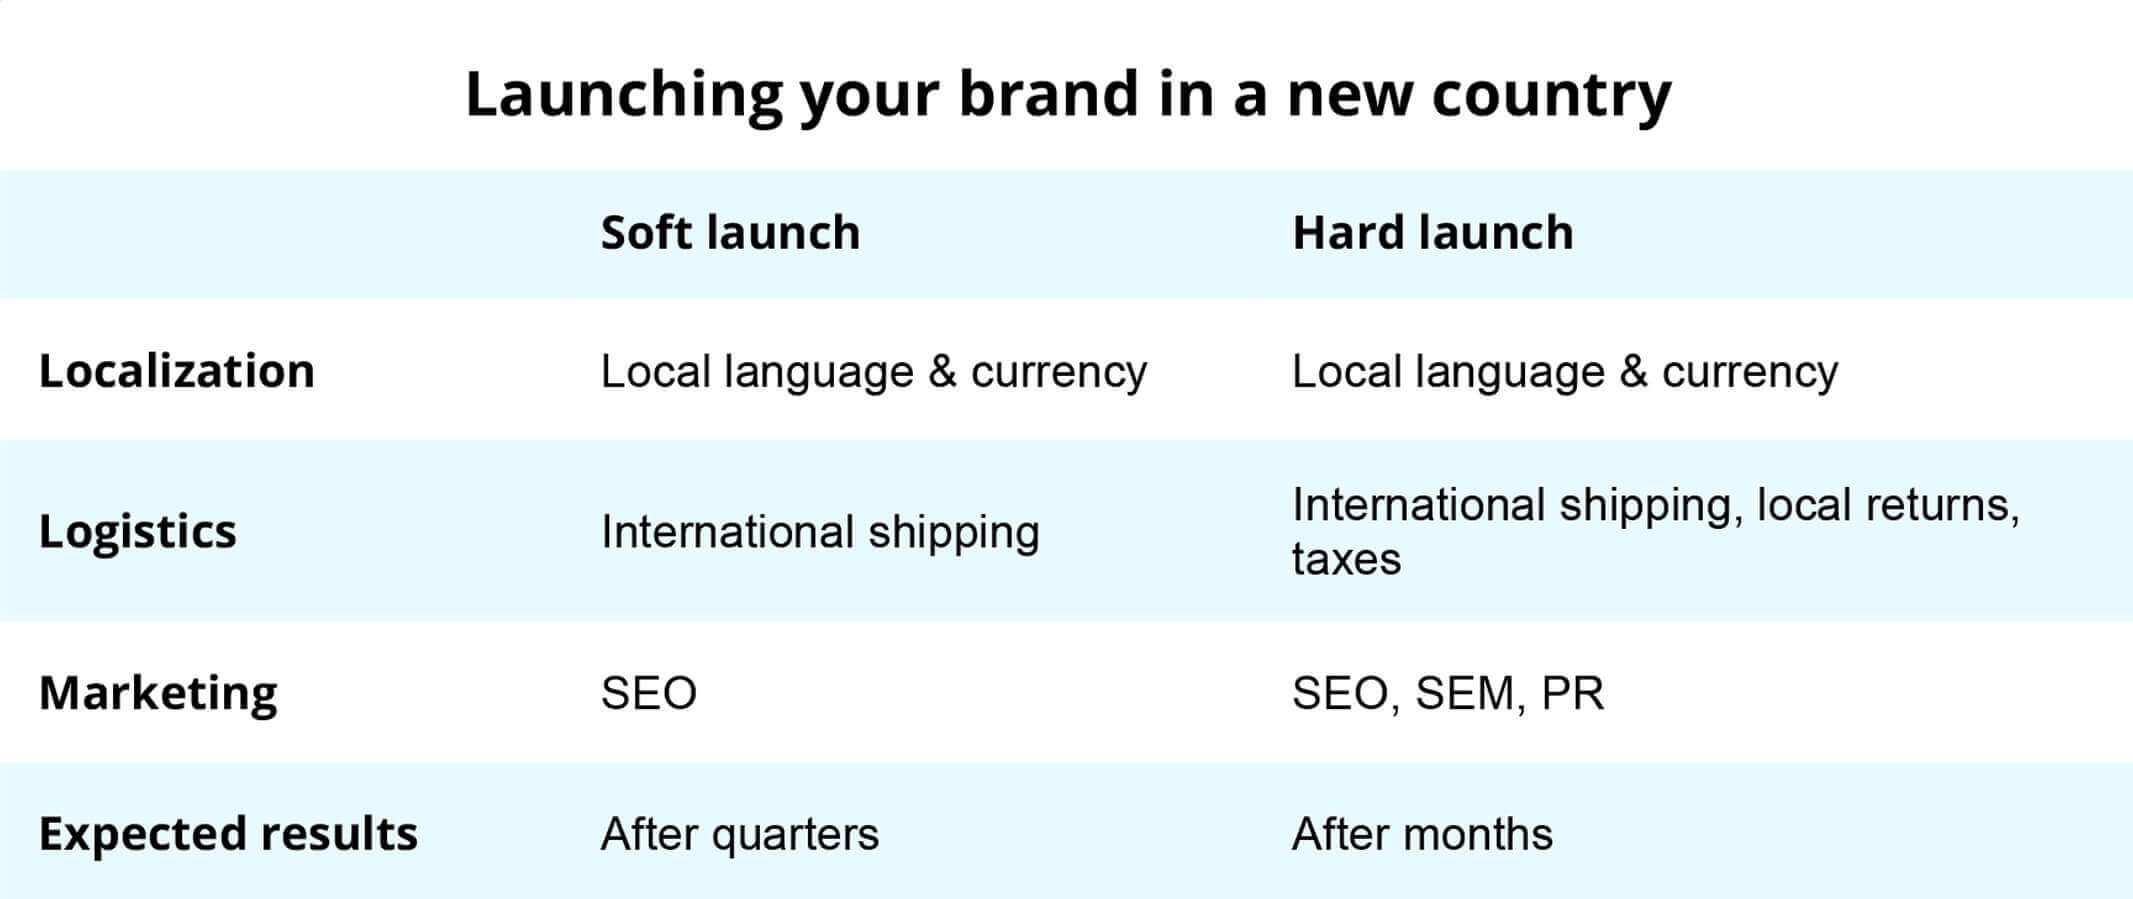 Launching your brand in a new country